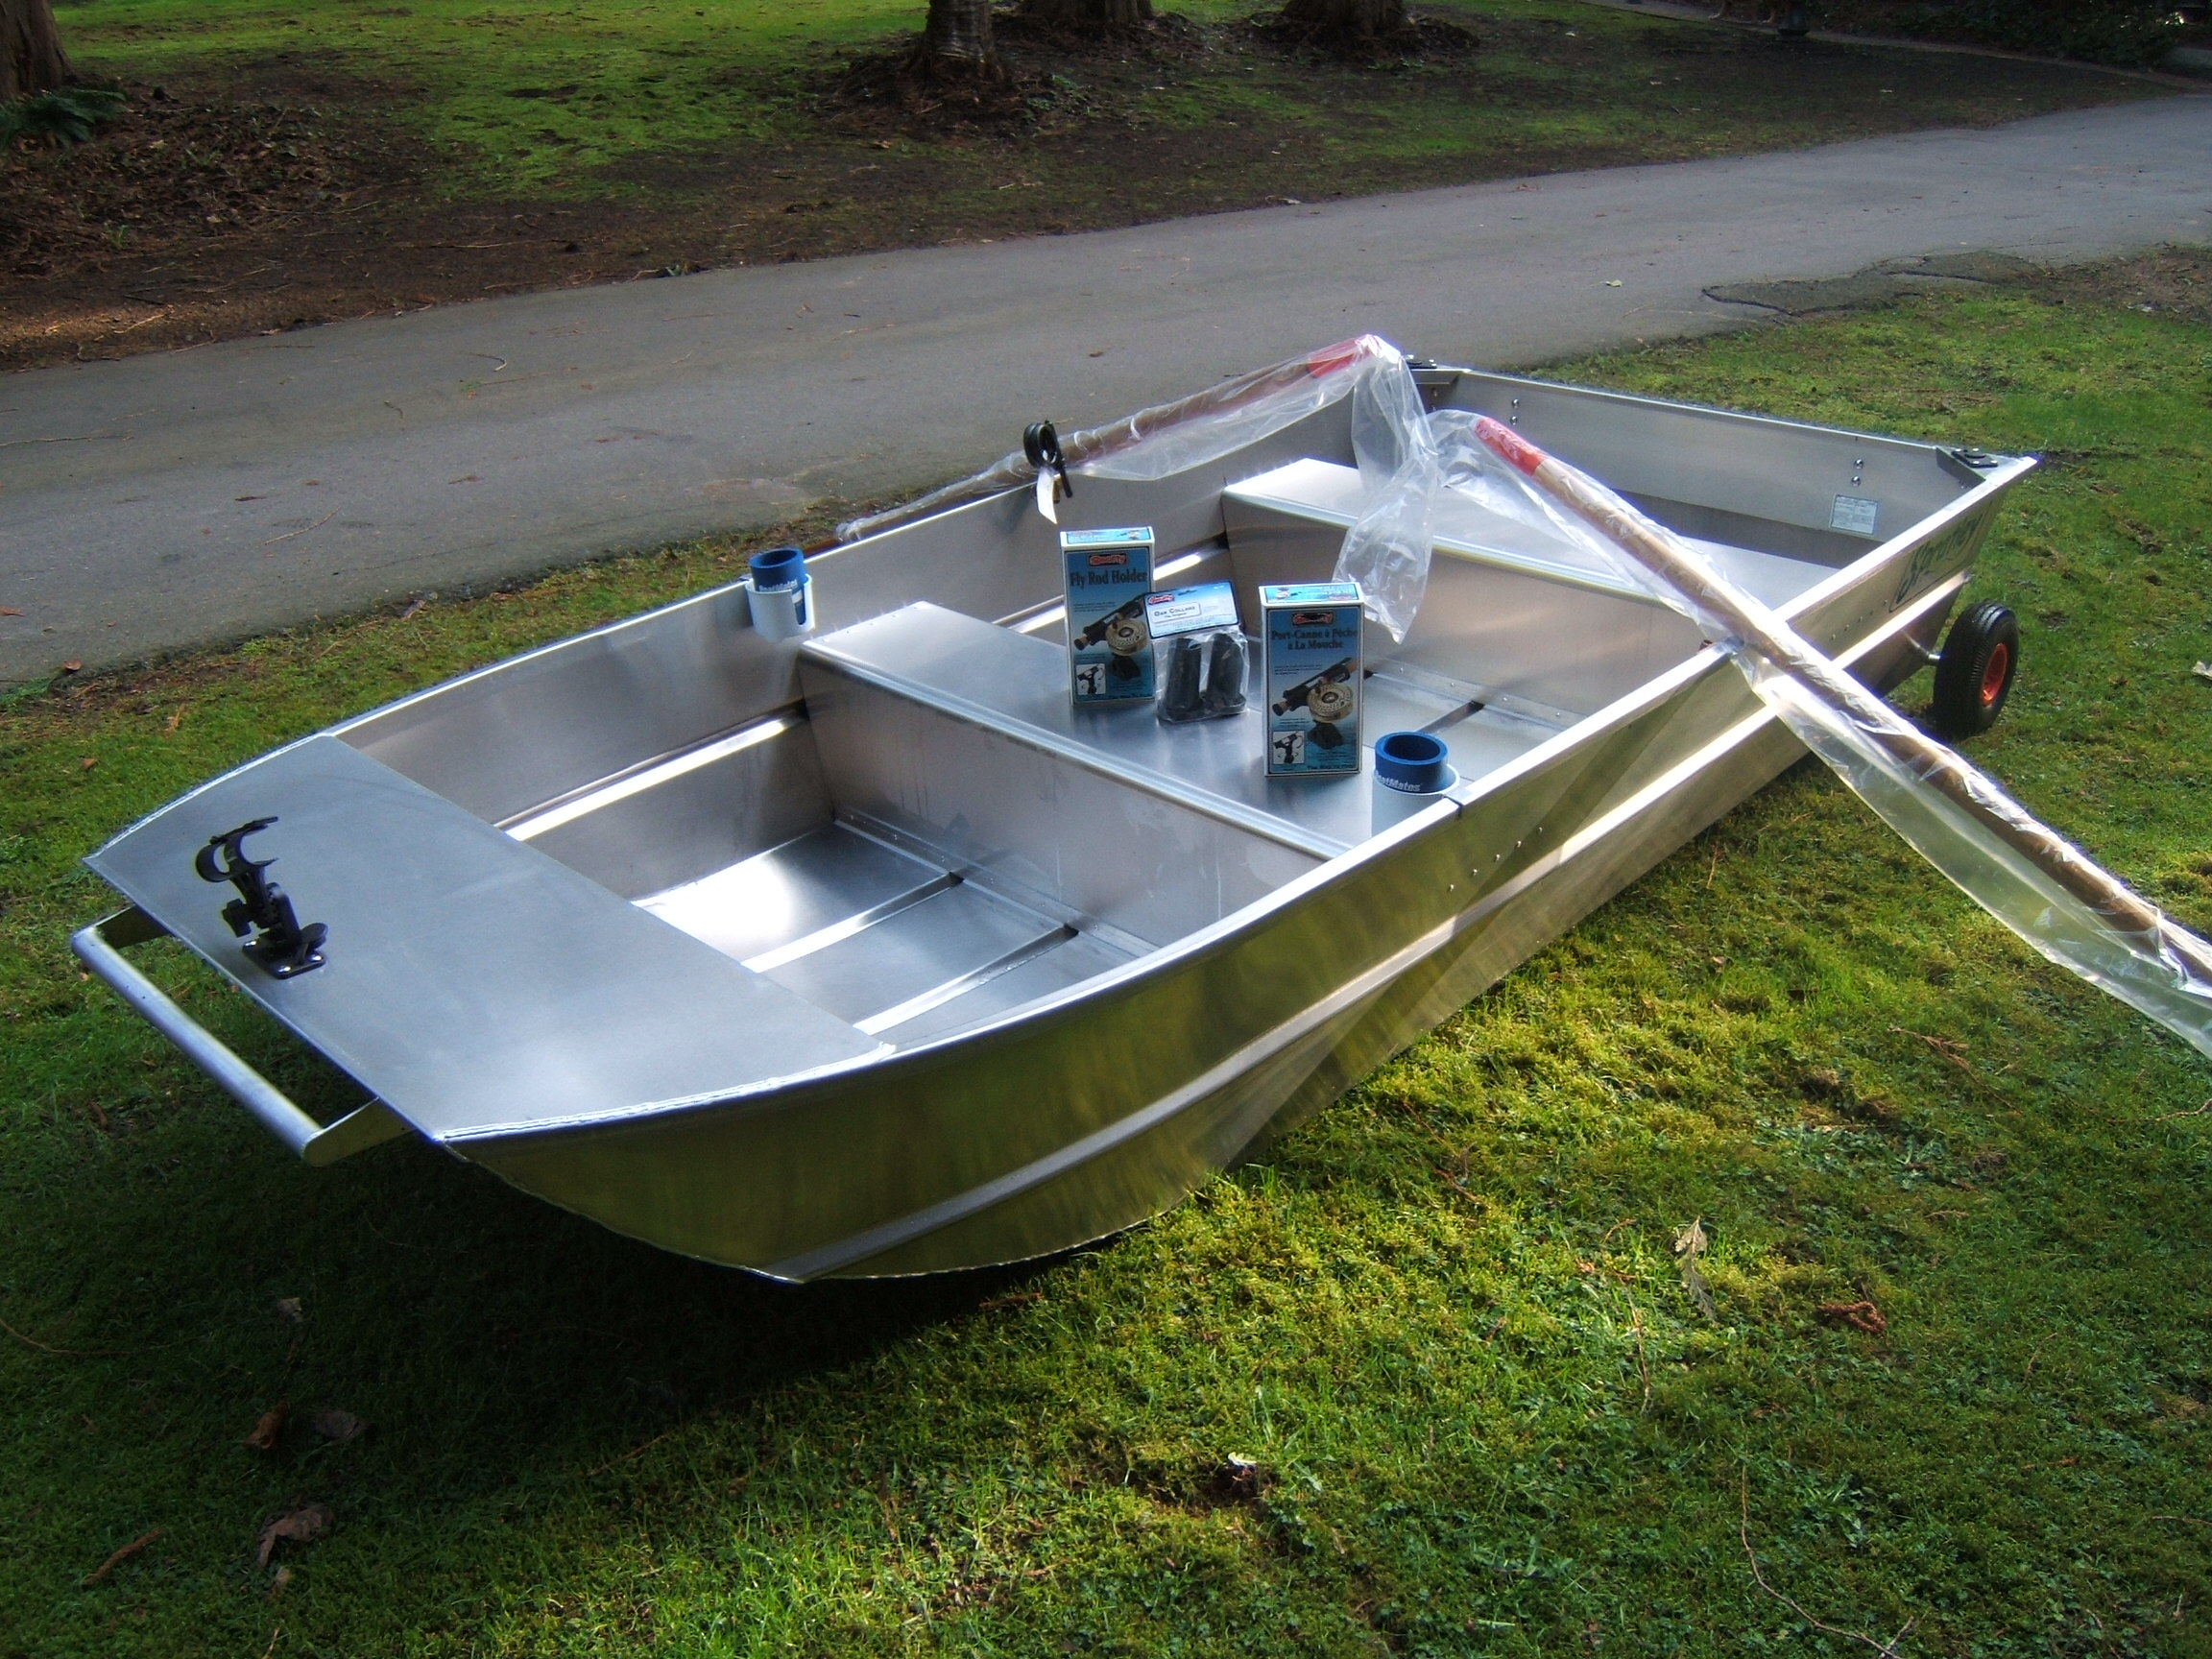 Flat Bottom Aluminum Fishing Boats | www.pixshark.com - Images Galleries With A Bite!